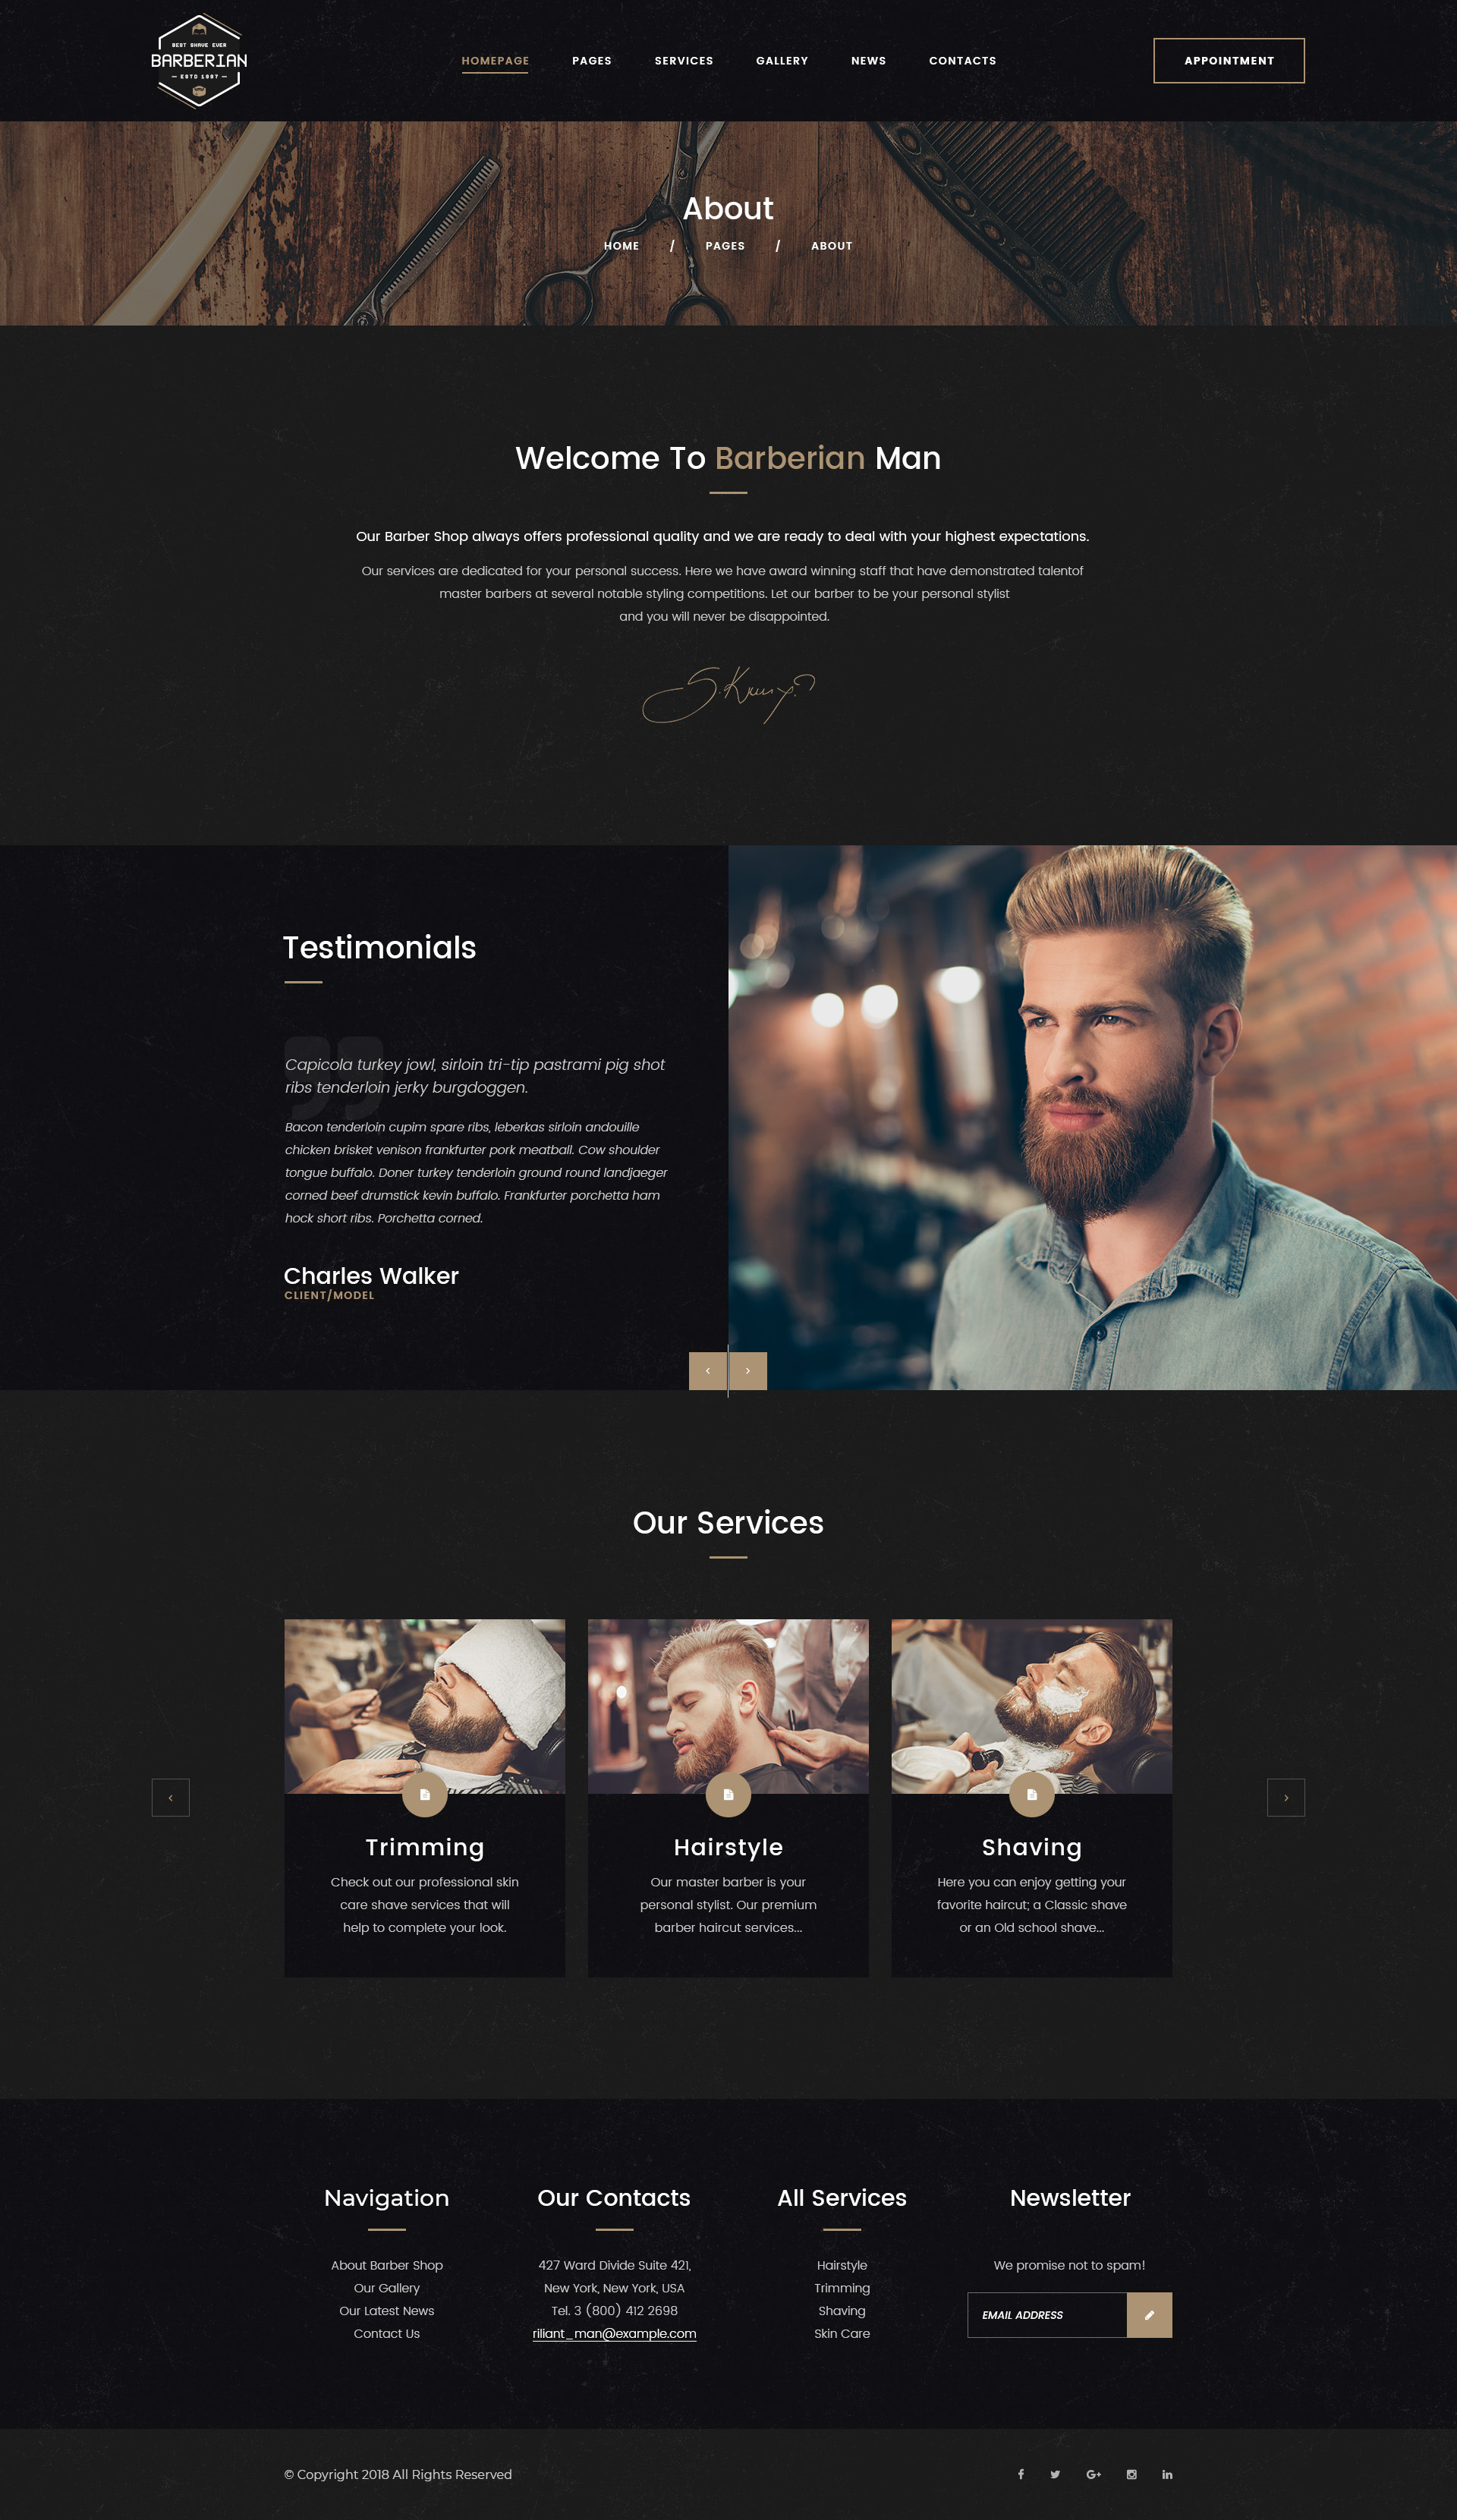 Barberian - Professional Barber Shop & Hair Salons Psd Template pertaining to Hair Appointment Schedule Template